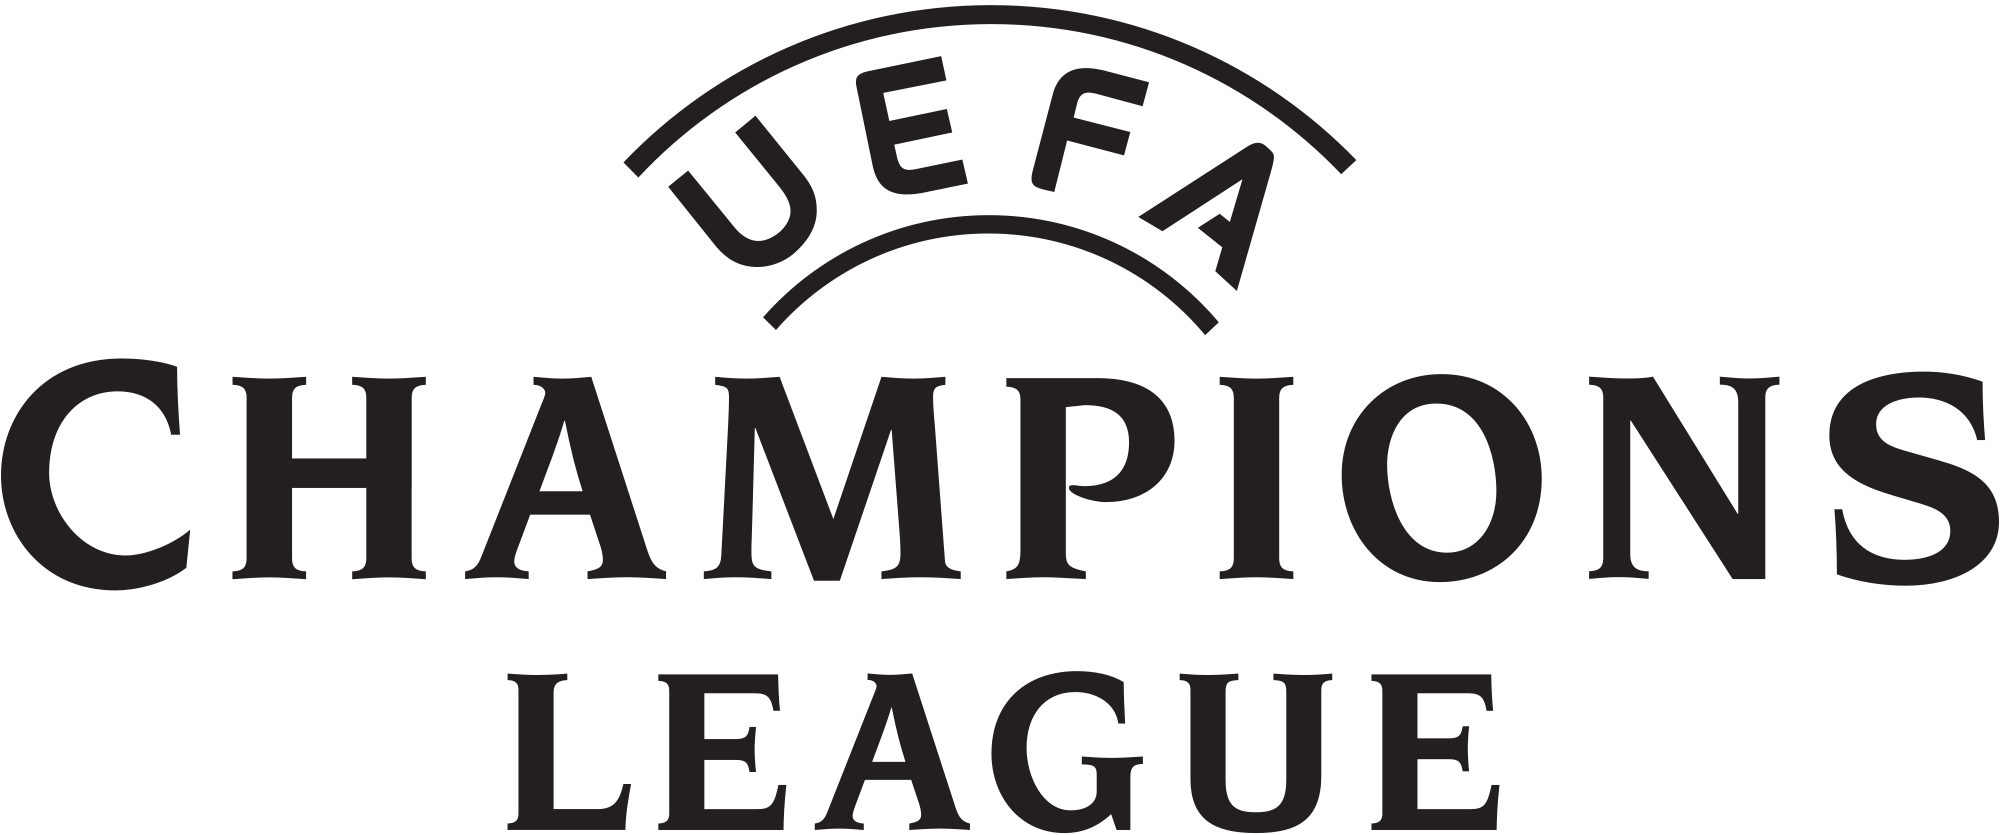 Filelogo uefa 2012g wikimedia commons filelogo uefa 2012g altavistaventures Gallery